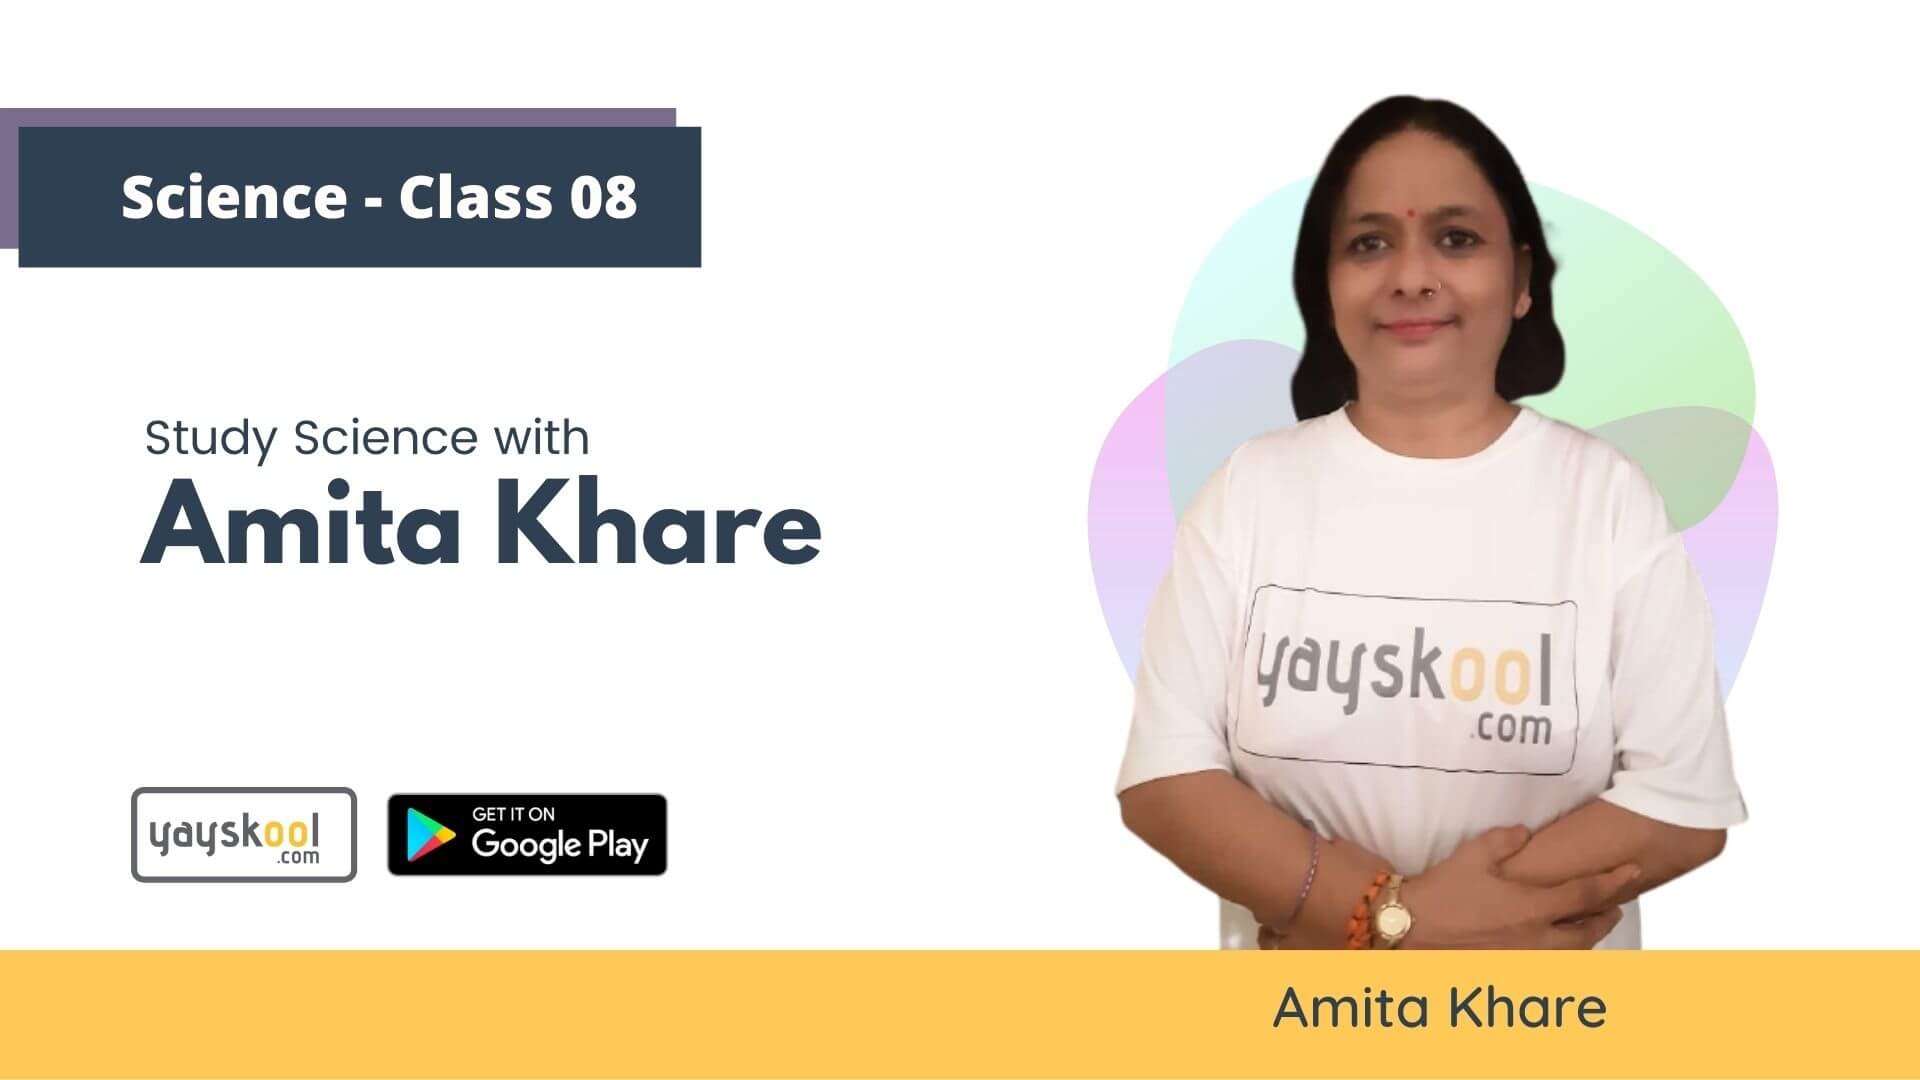 Complete Course - Science for Class 08 (CBSE) - By Amita Khare